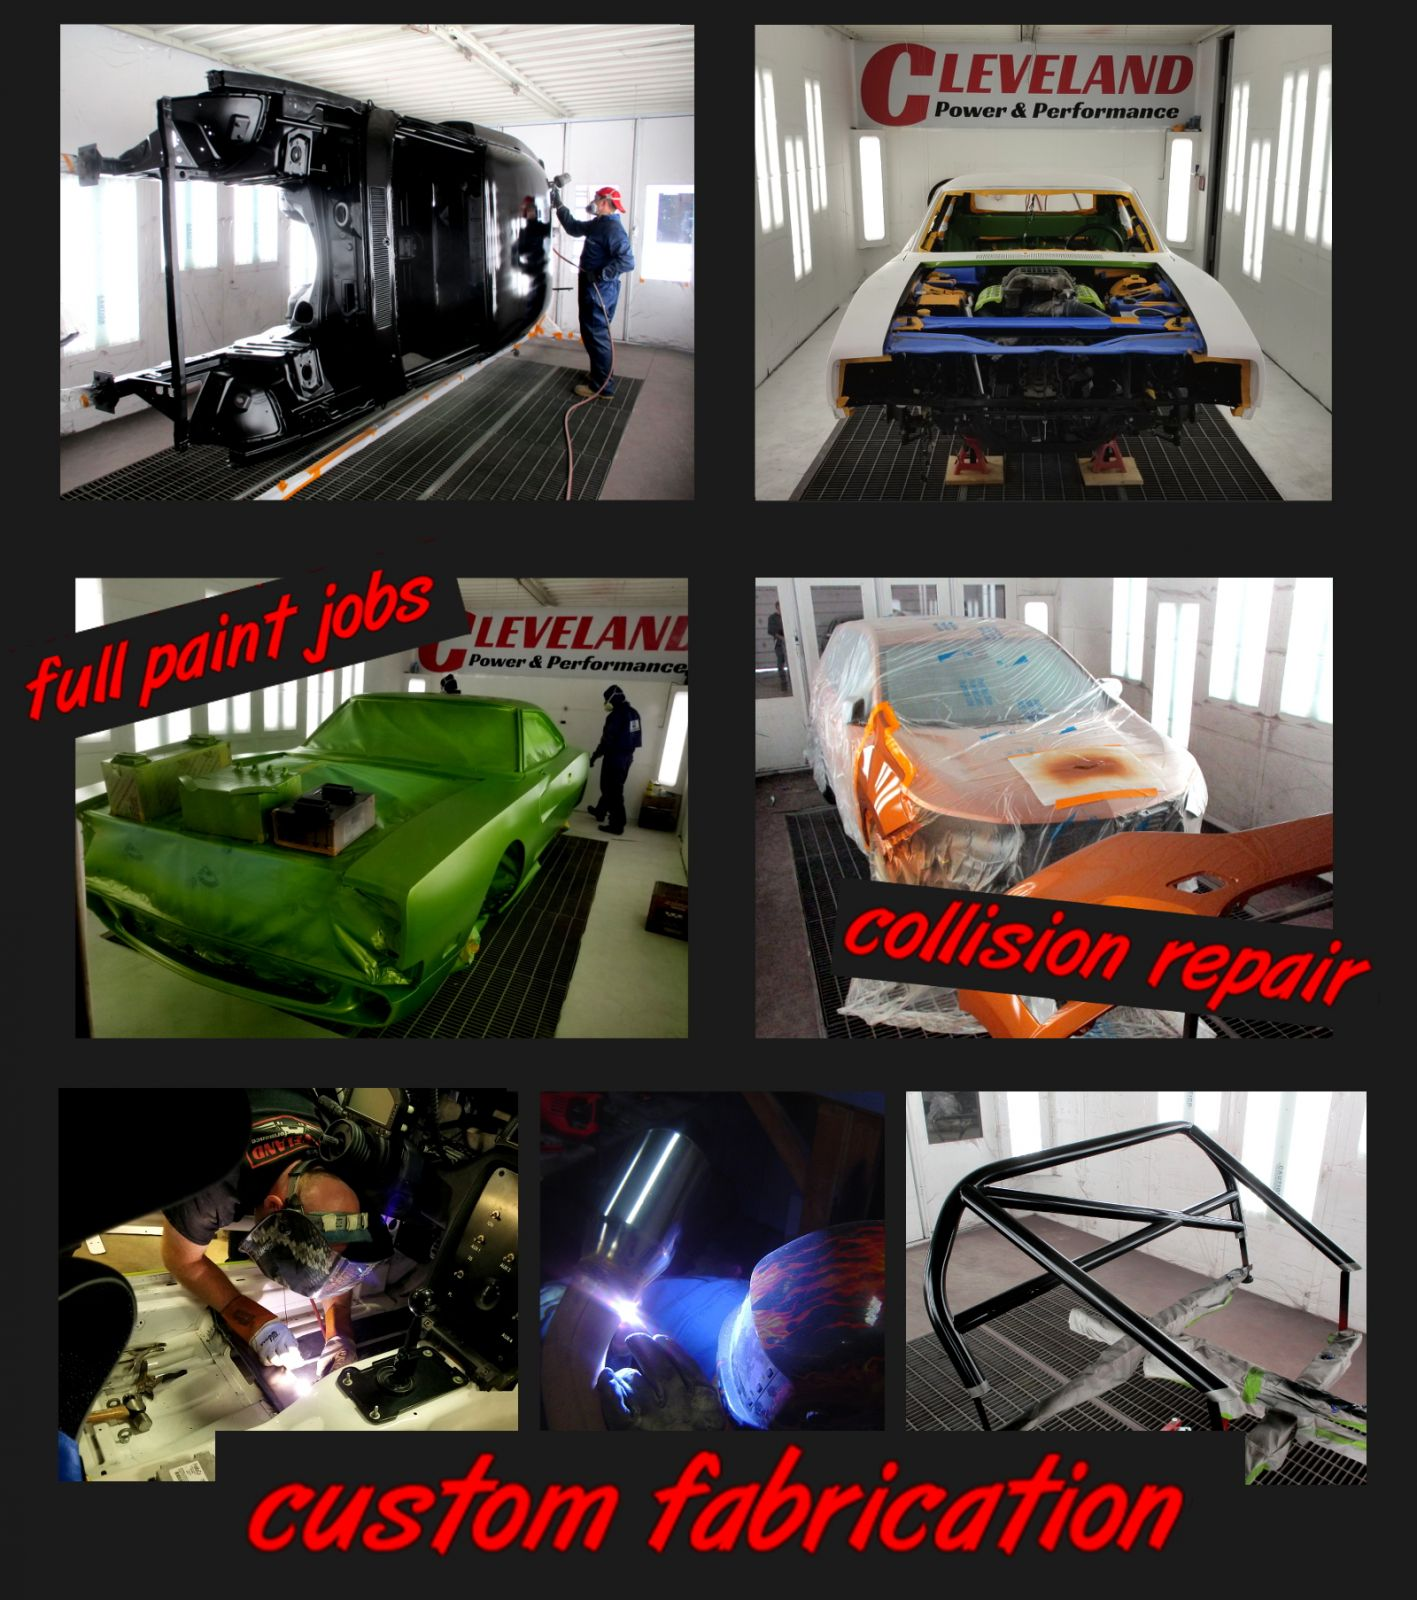 Cleveland Power & Performance Body Shop full paint jobs, Classic vehicle restoration, collision repair custom fabrication